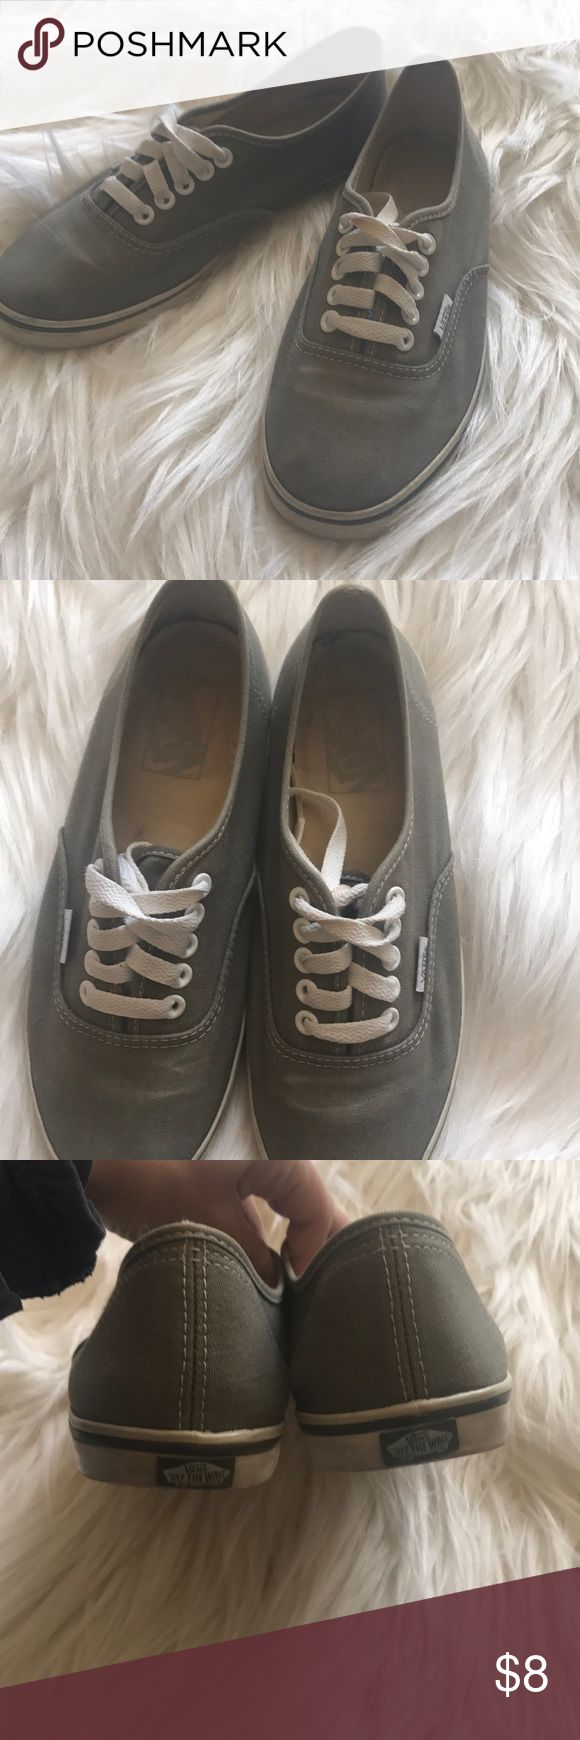 Gray vans tennis shoes Used gray vans tennis shoes. Size 7. Price negotiable Vans Shoes Sneakers